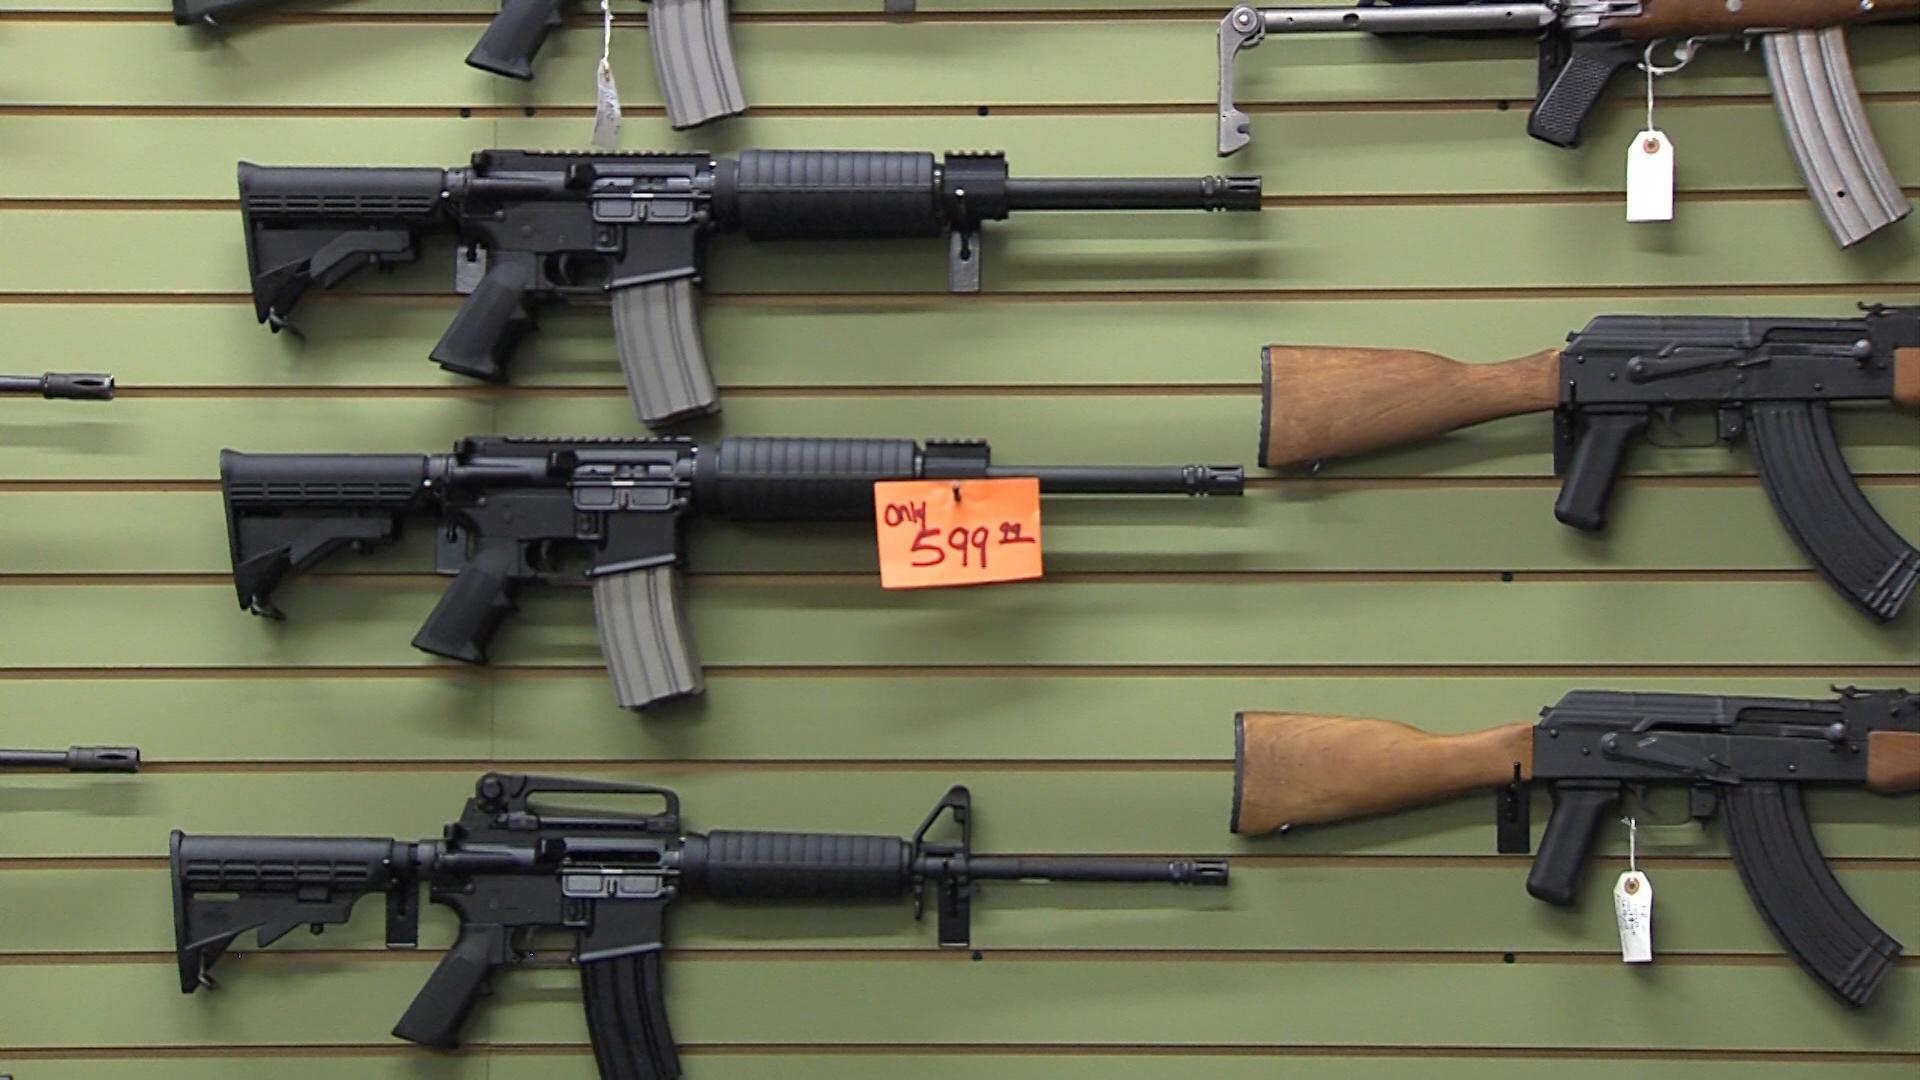 assault weapons ban expires essay Read this essay on assault weapons ban come browse our large digital warehouse of free sample essays get the knowledge you need in order to pass your classes and more.